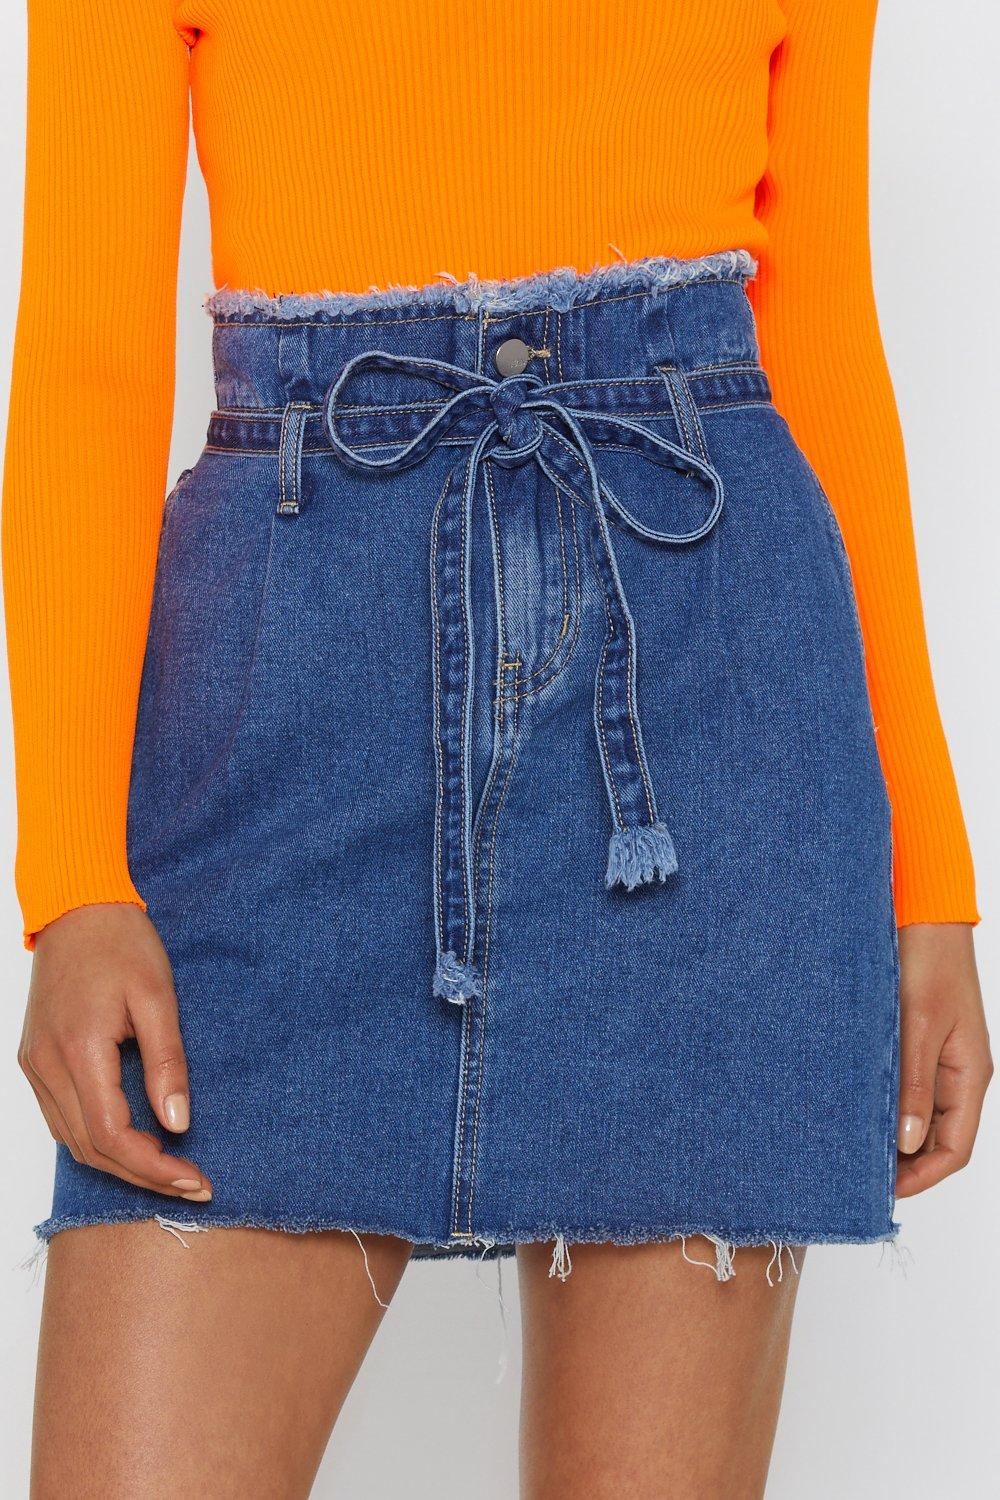 a9a30c8797 Waist of Space Paperbag Denim Skirt | Shop Clothes at Nasty Gal!